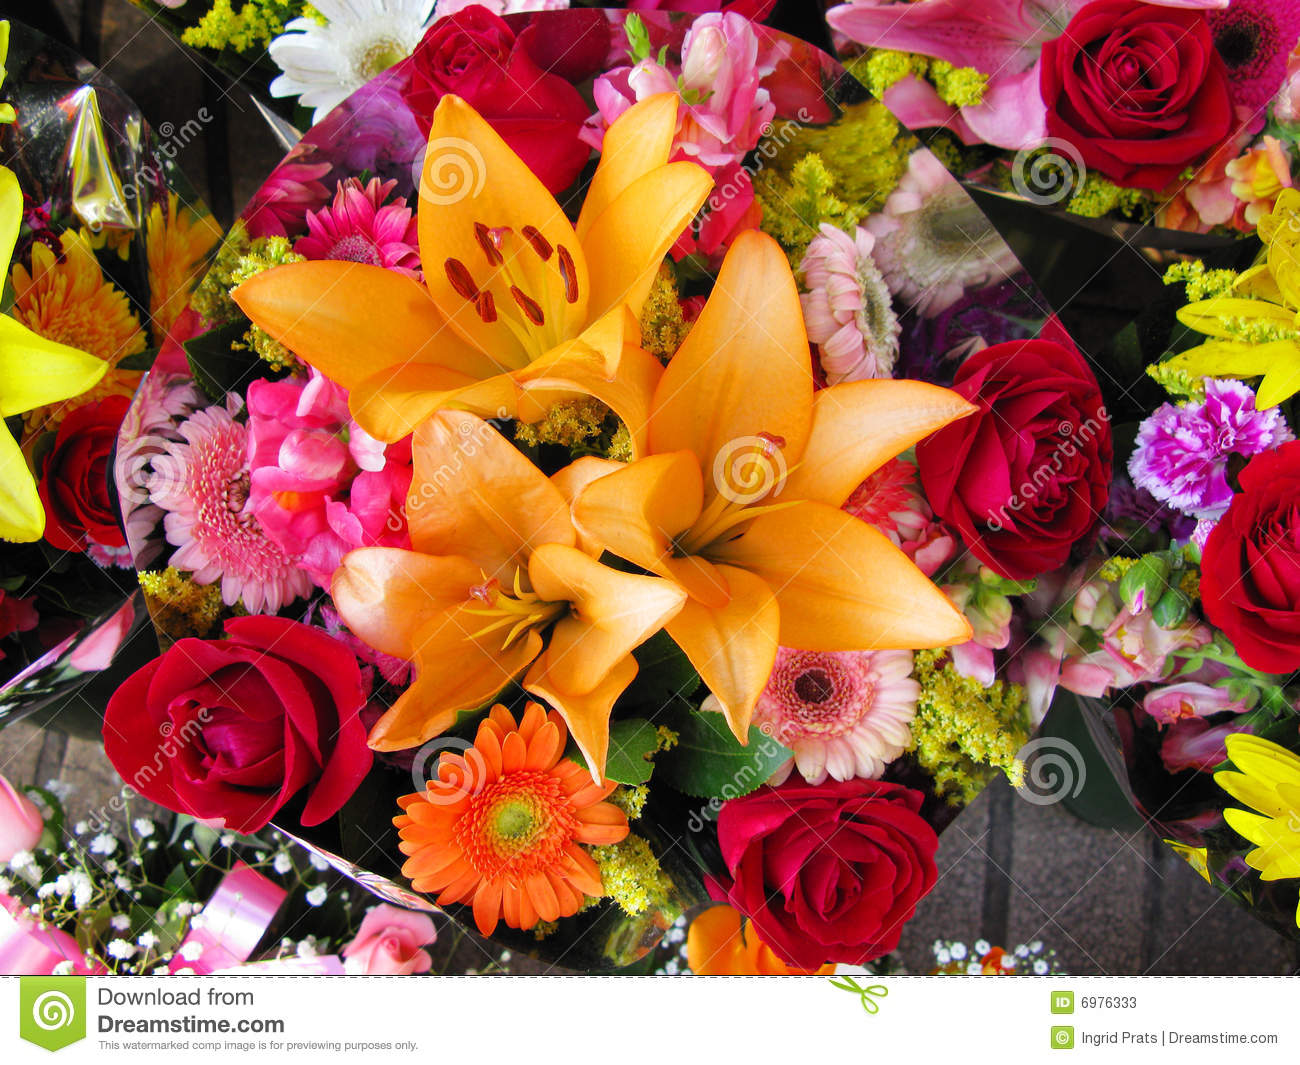 A Bouquet Of Colorful Flowers Stock Photo - Image of bright, natural ...